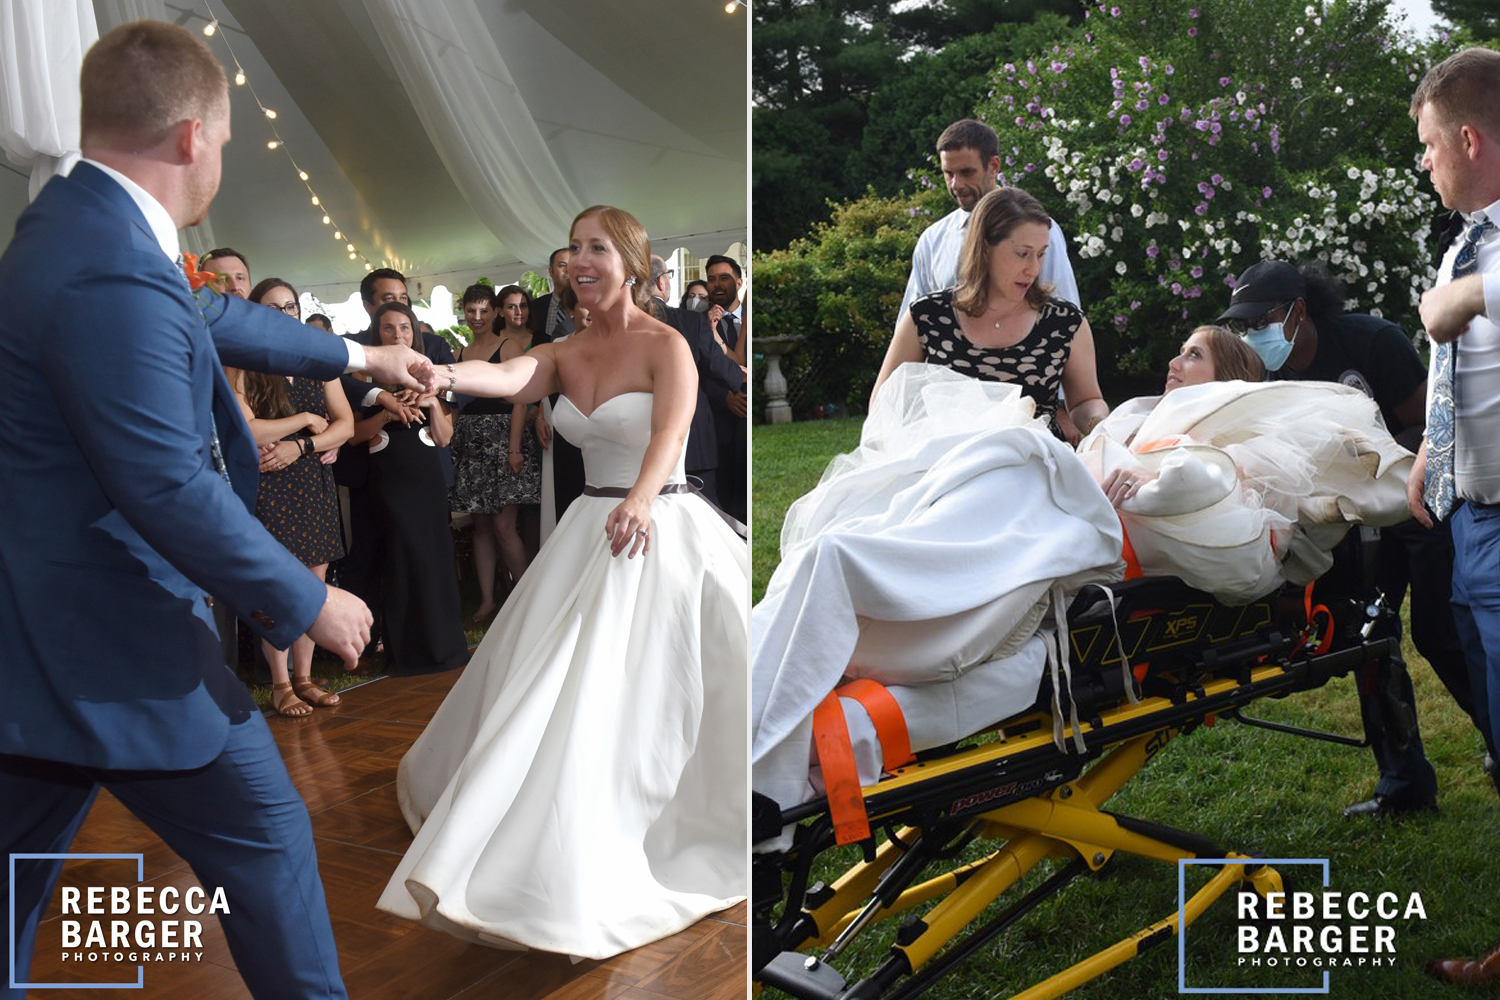 Bride Dislocates Leg During First Dance and Is Wheeled Out of Wedding